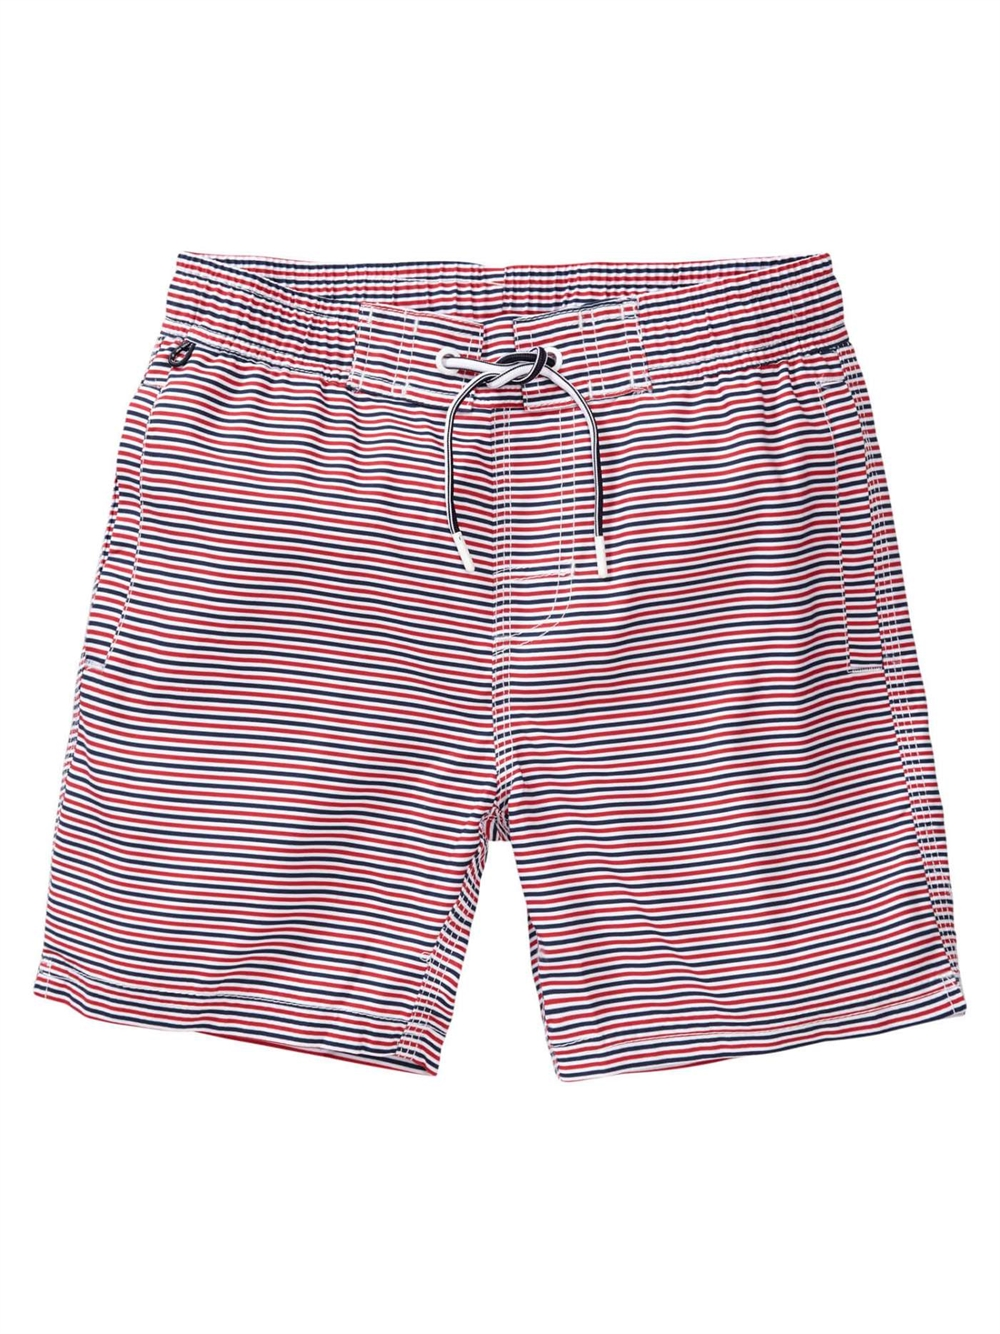 Swimming trunks with stripes Fire Red